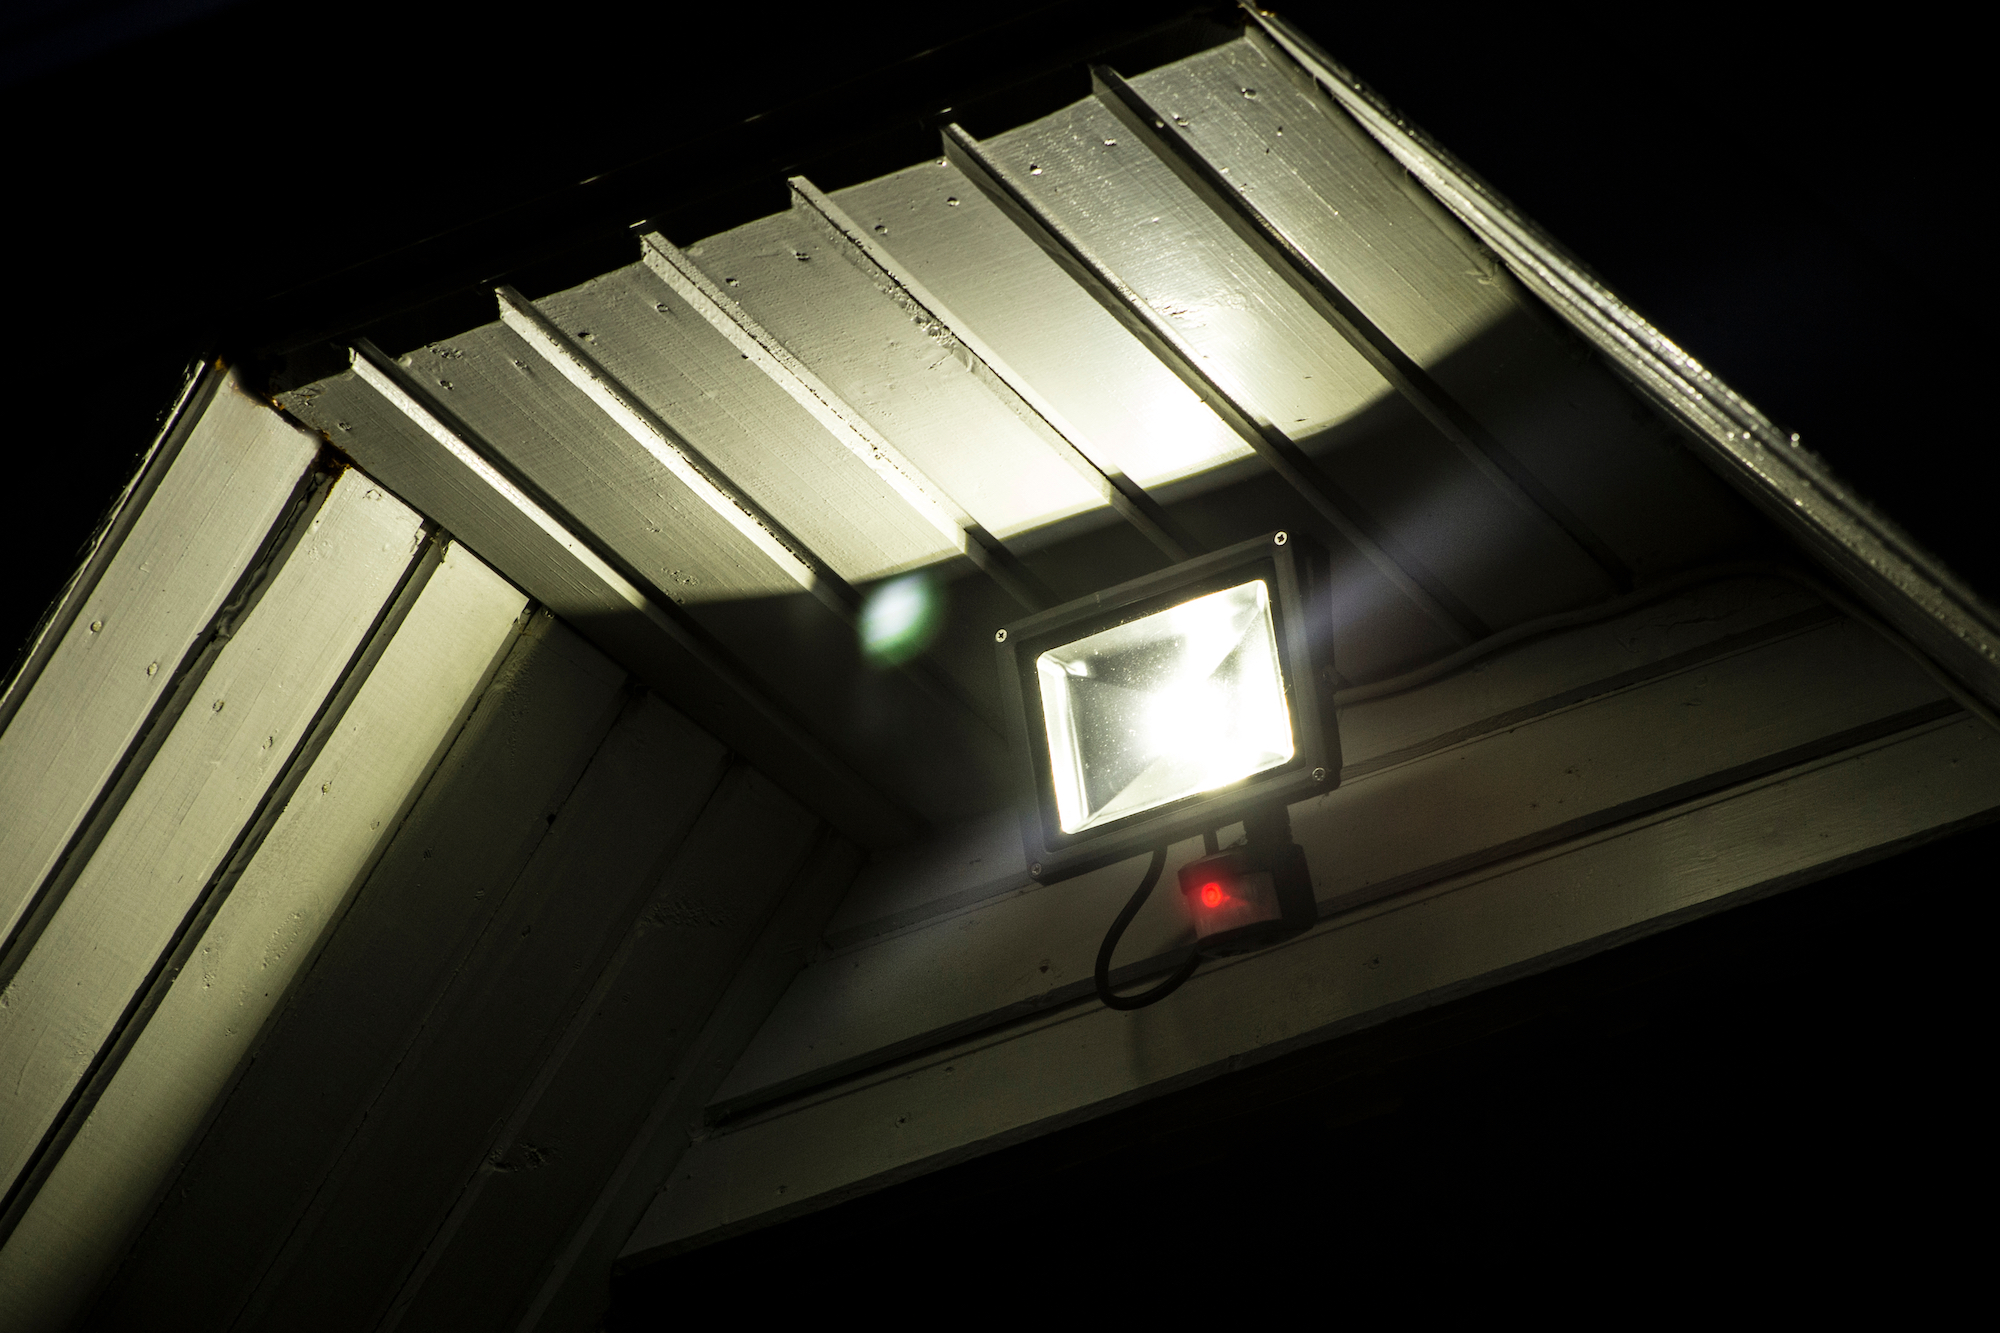 motion sensor light under awning of house a night with floodlight